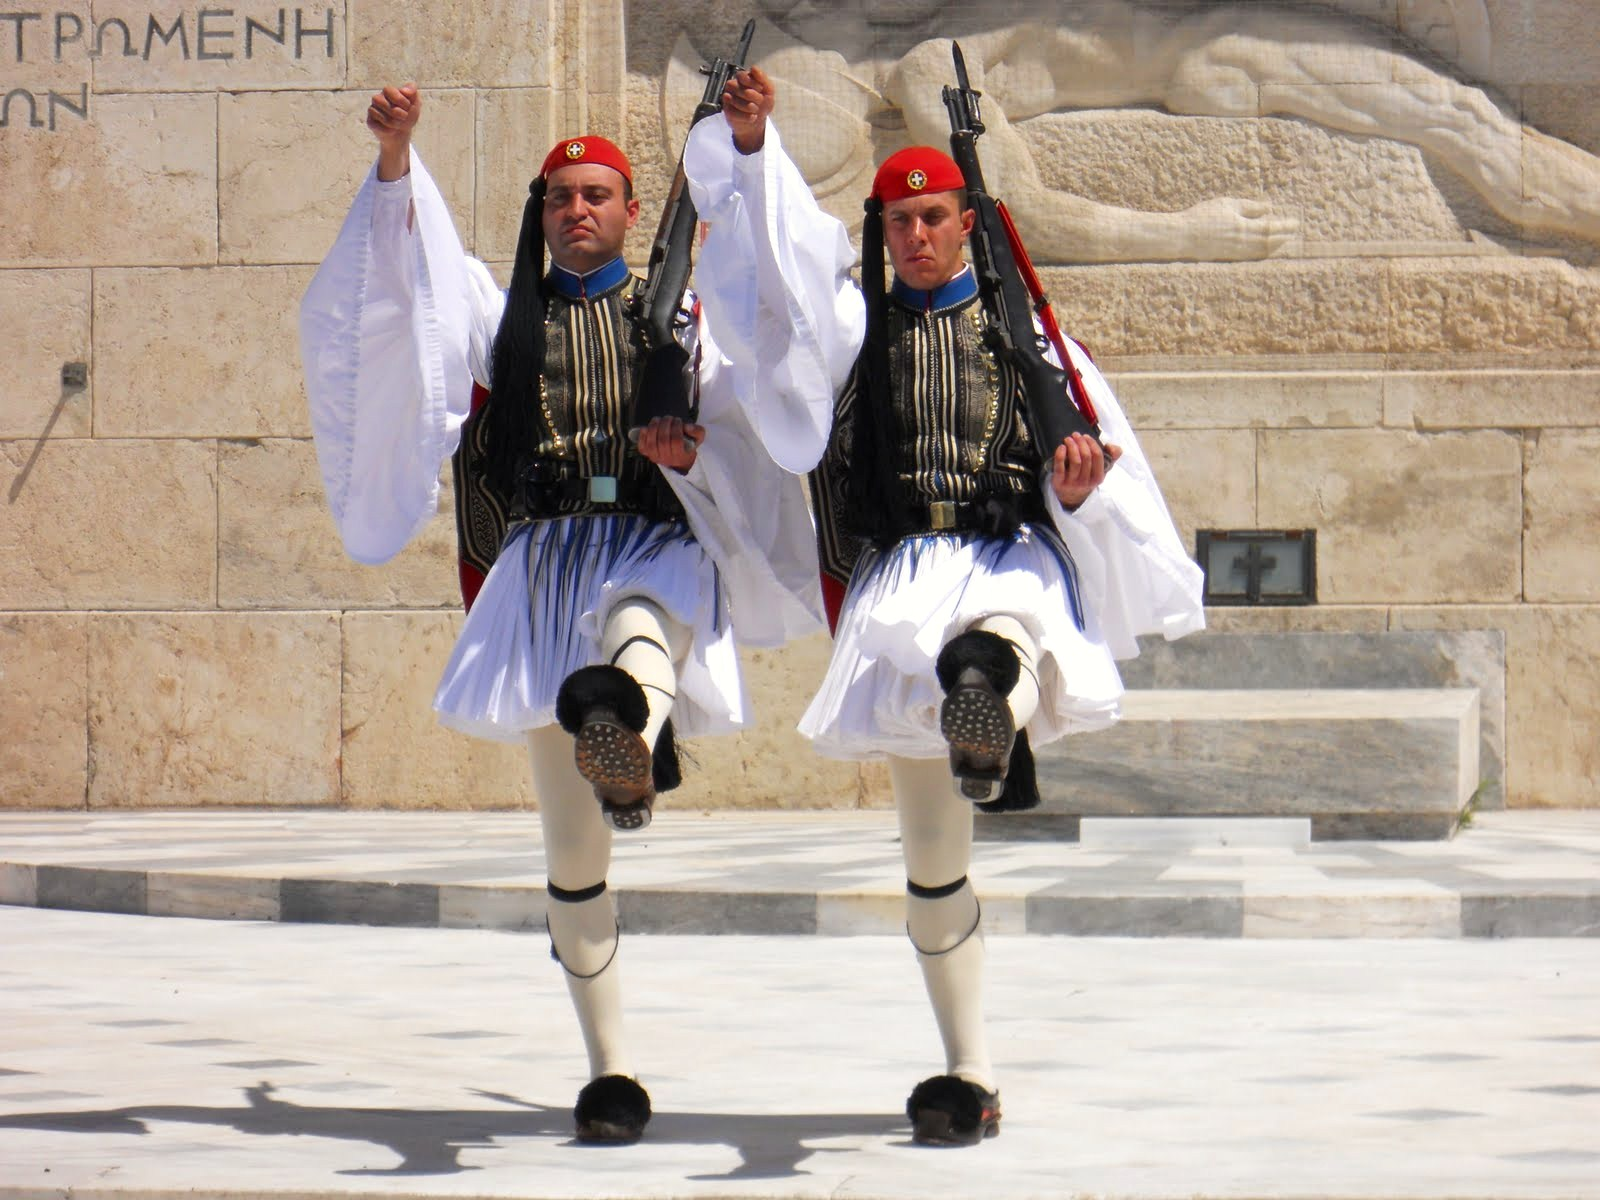 CHANGING OF THE GUARDS CEREMONY IN ATHENS